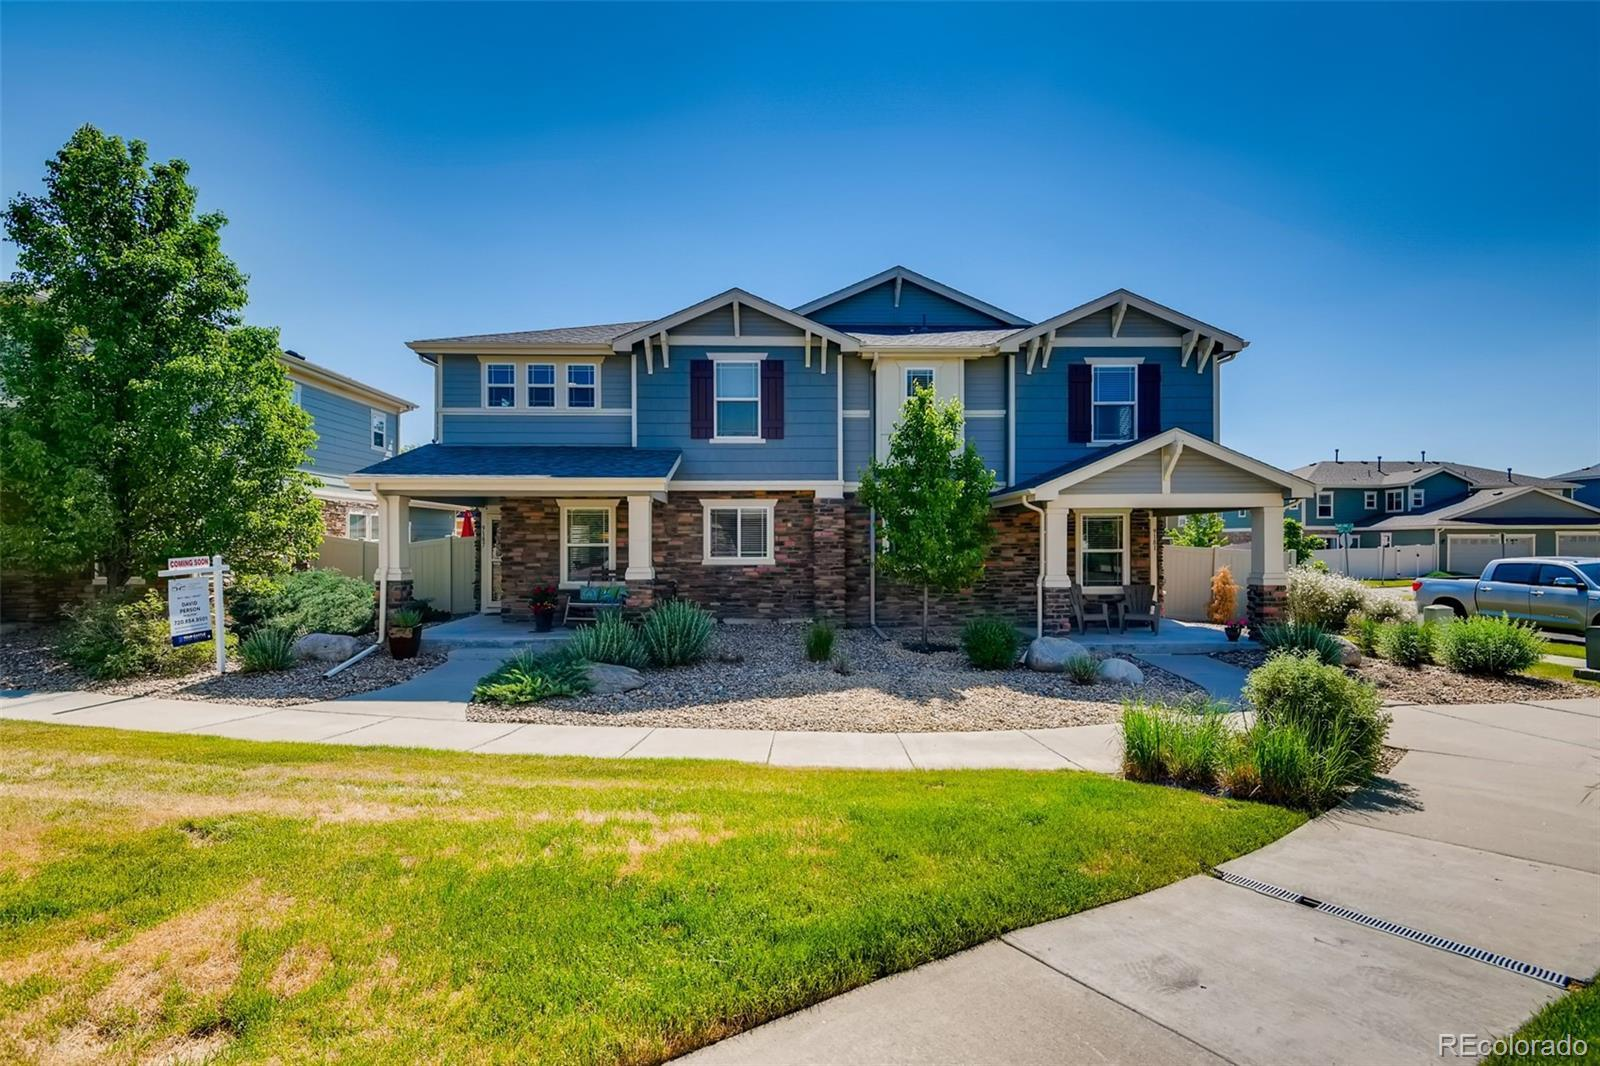 9187 W 104th Circle, Westminster, CO 80021 - #: 3972089